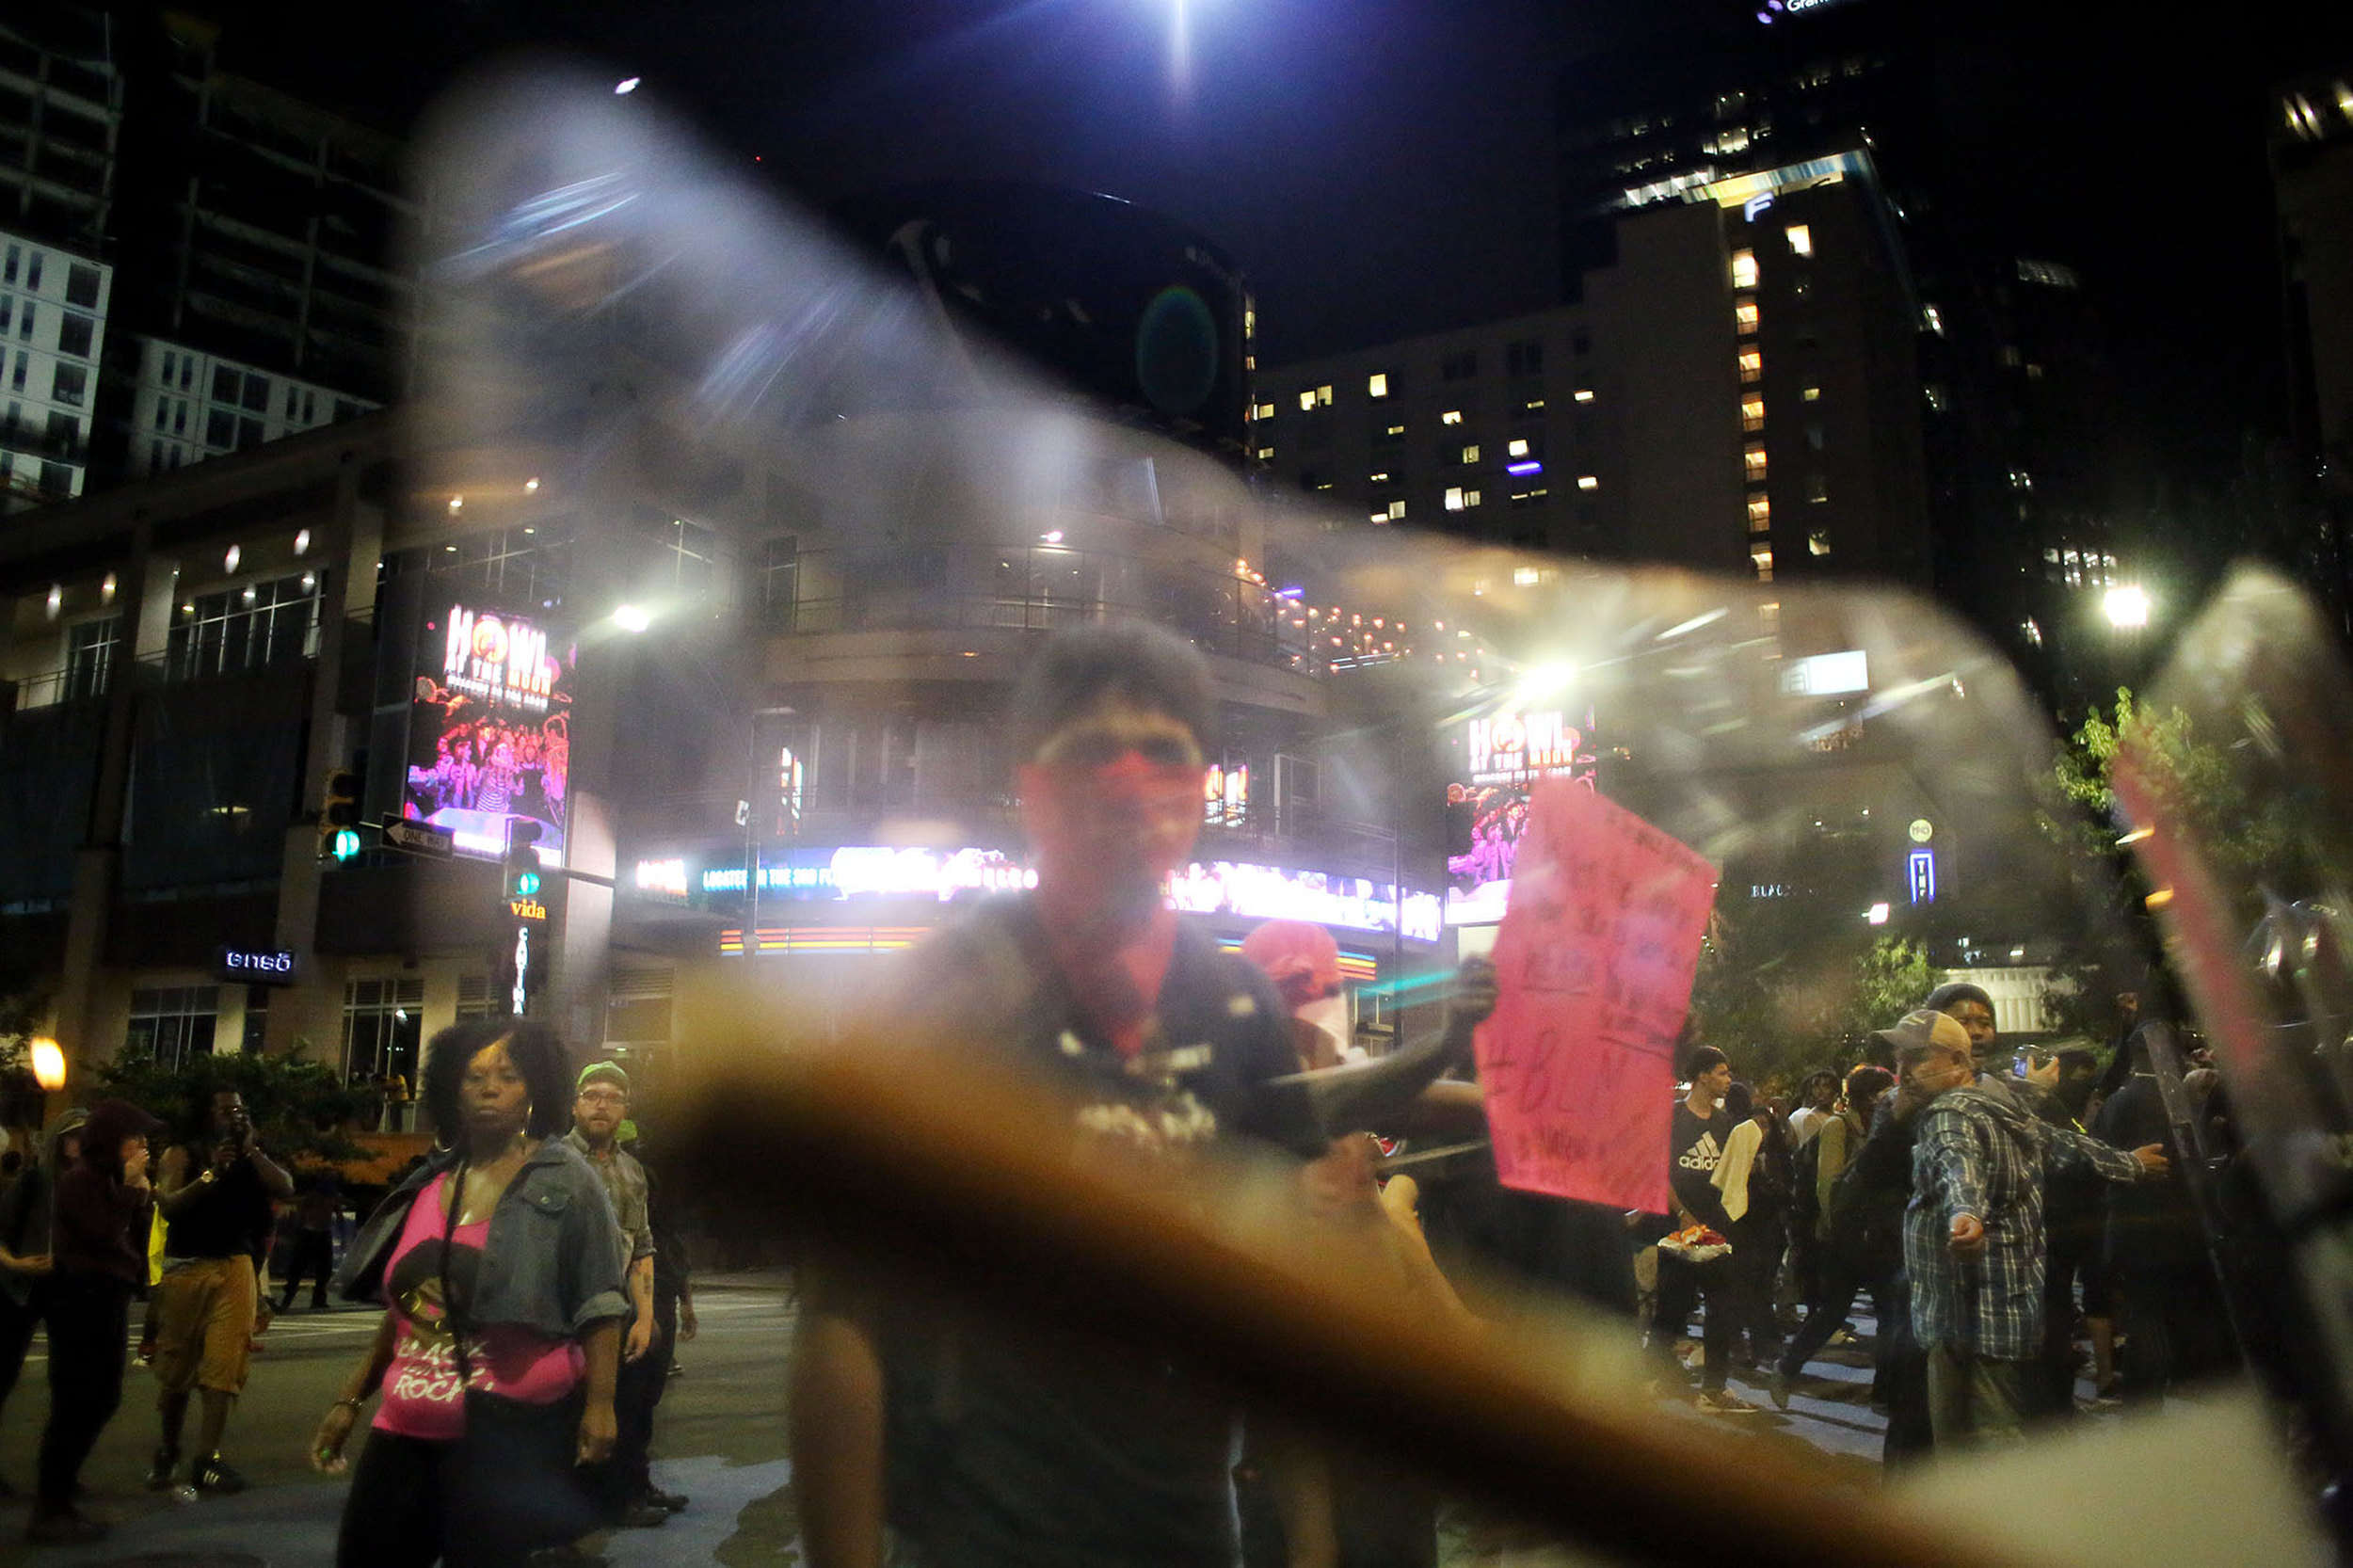 A masked protester is seen through a riot police shield, Sept. 21, 2016, at the intersection of North College and East Trade streets in downtown Charlotte, N.C.